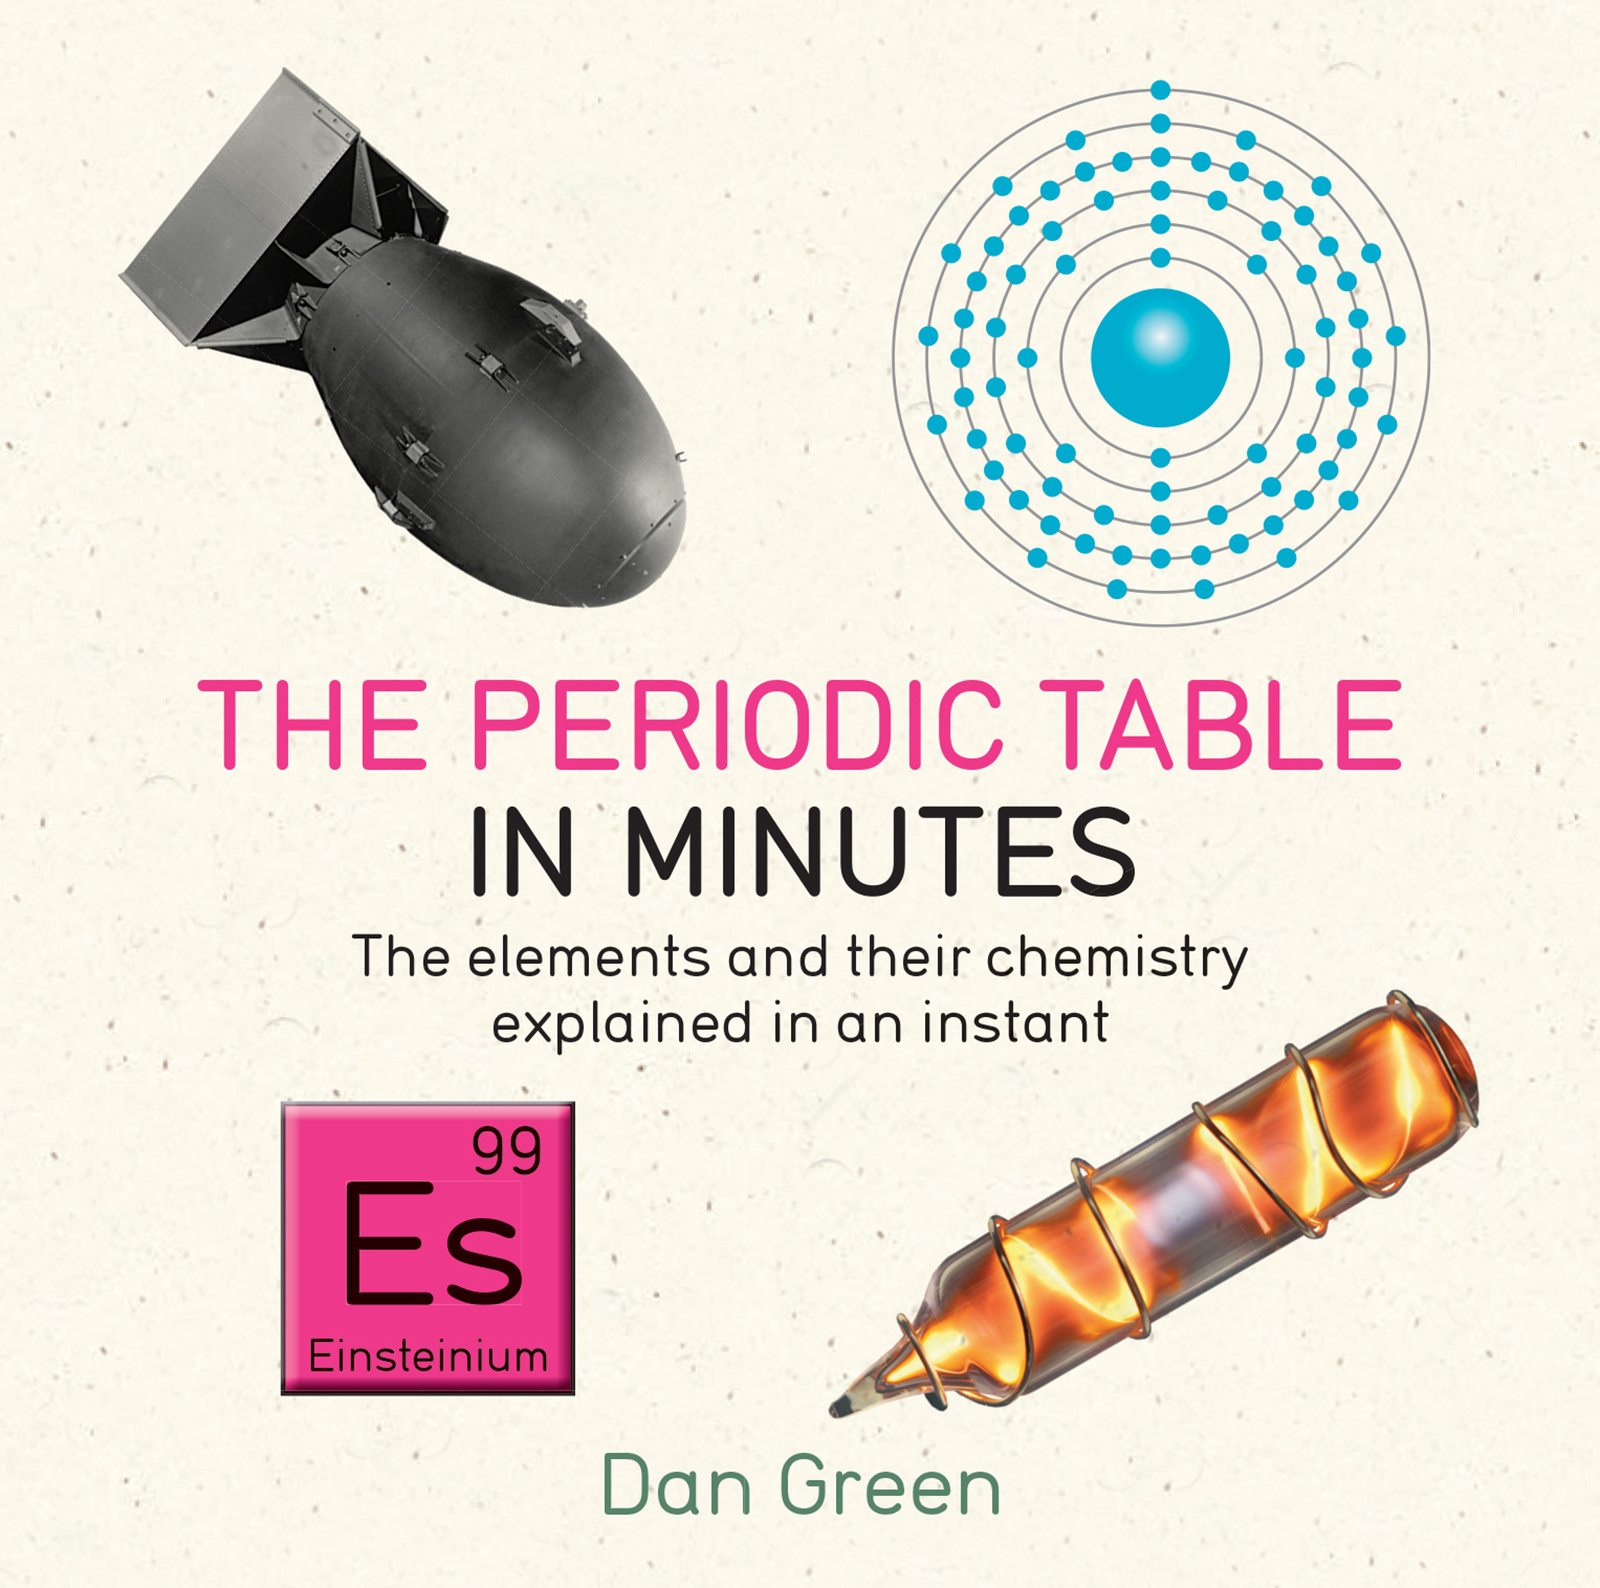 Periodic table in minutes by dan green books hachette australia urtaz Image collections